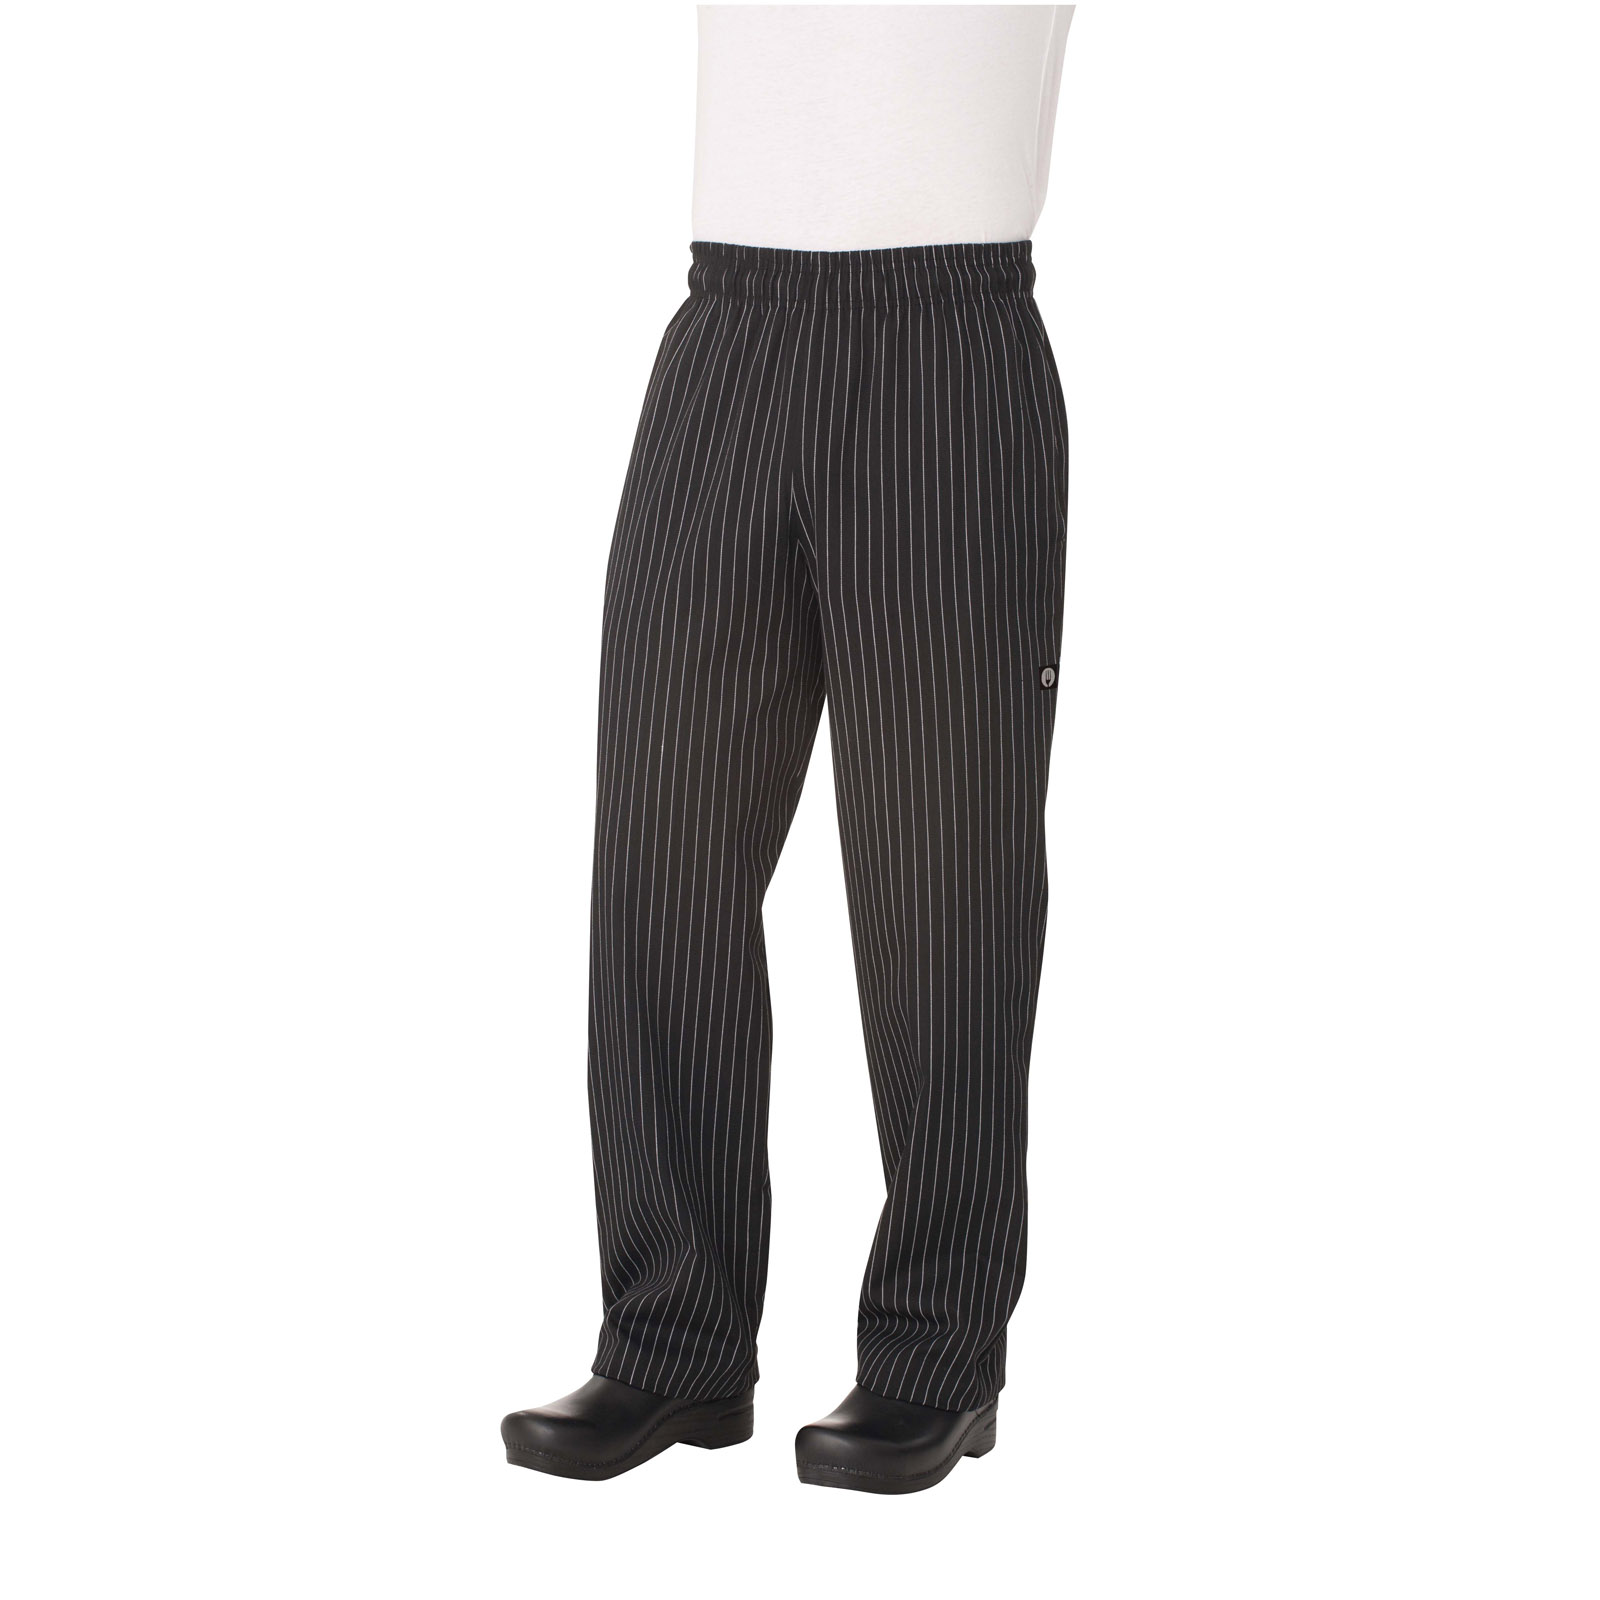 Chef Works PINB0002XL chef's pants